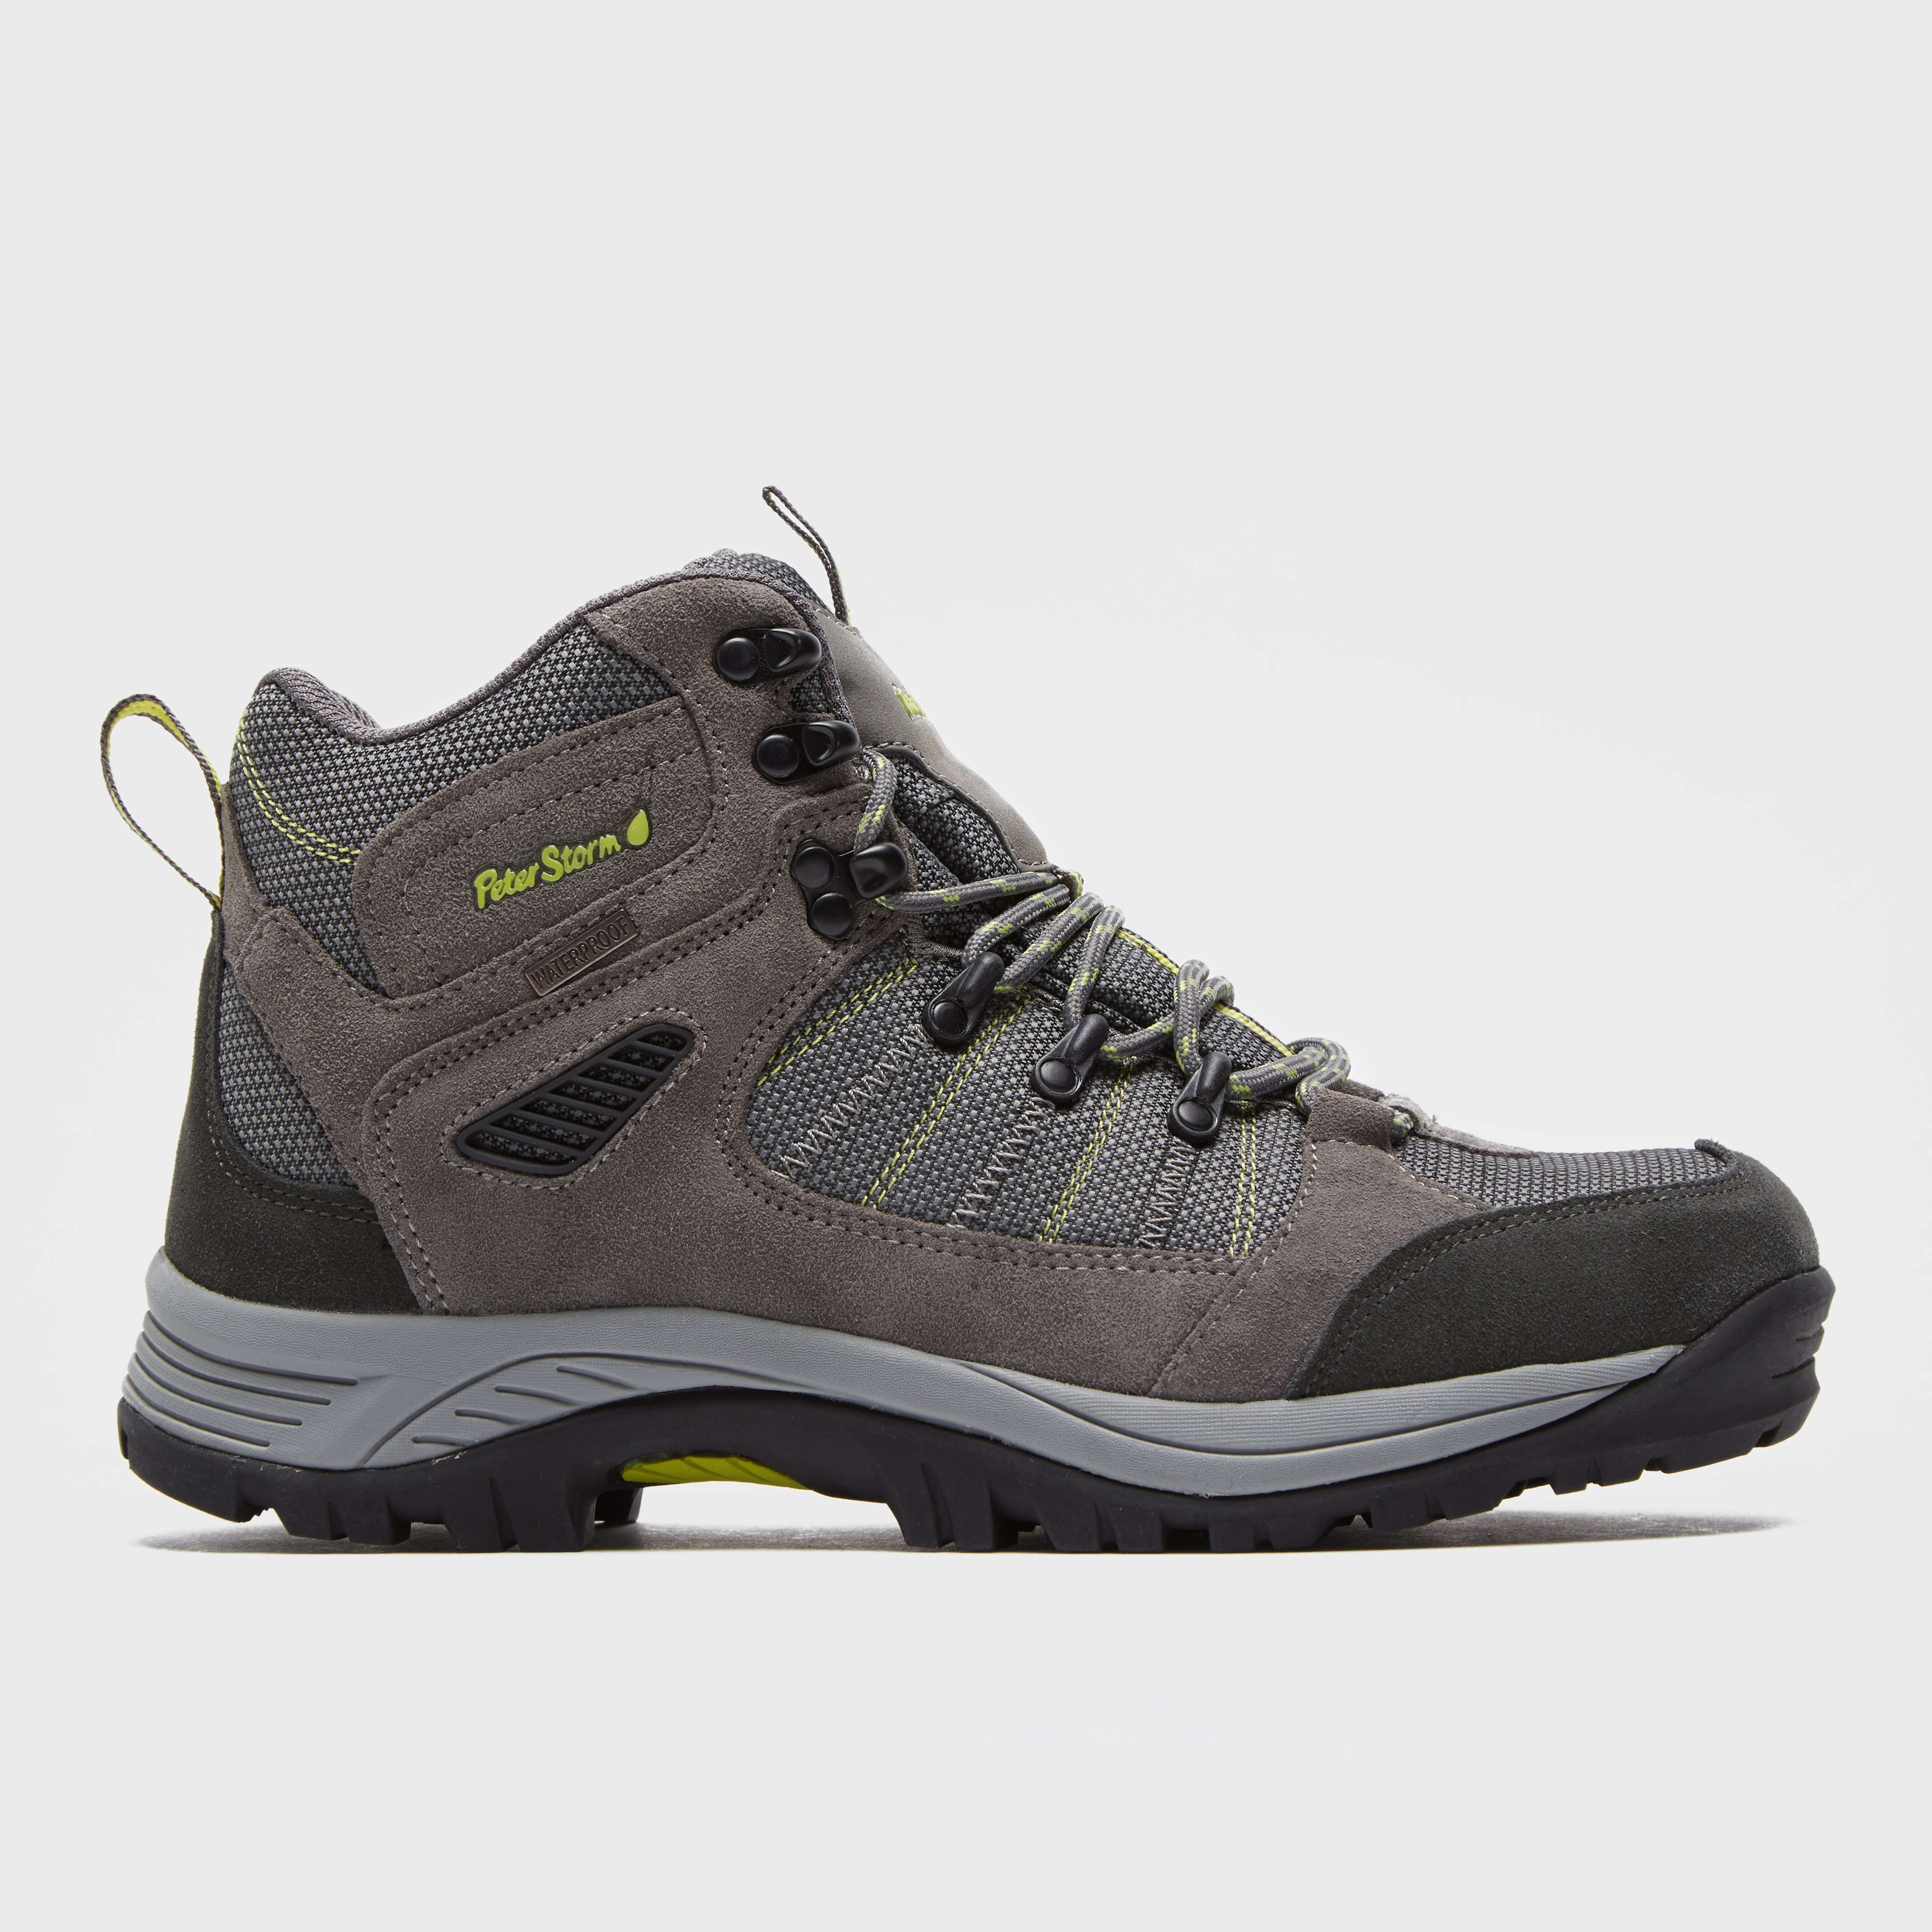 PETER STORM Men's Malvern Walking Boots